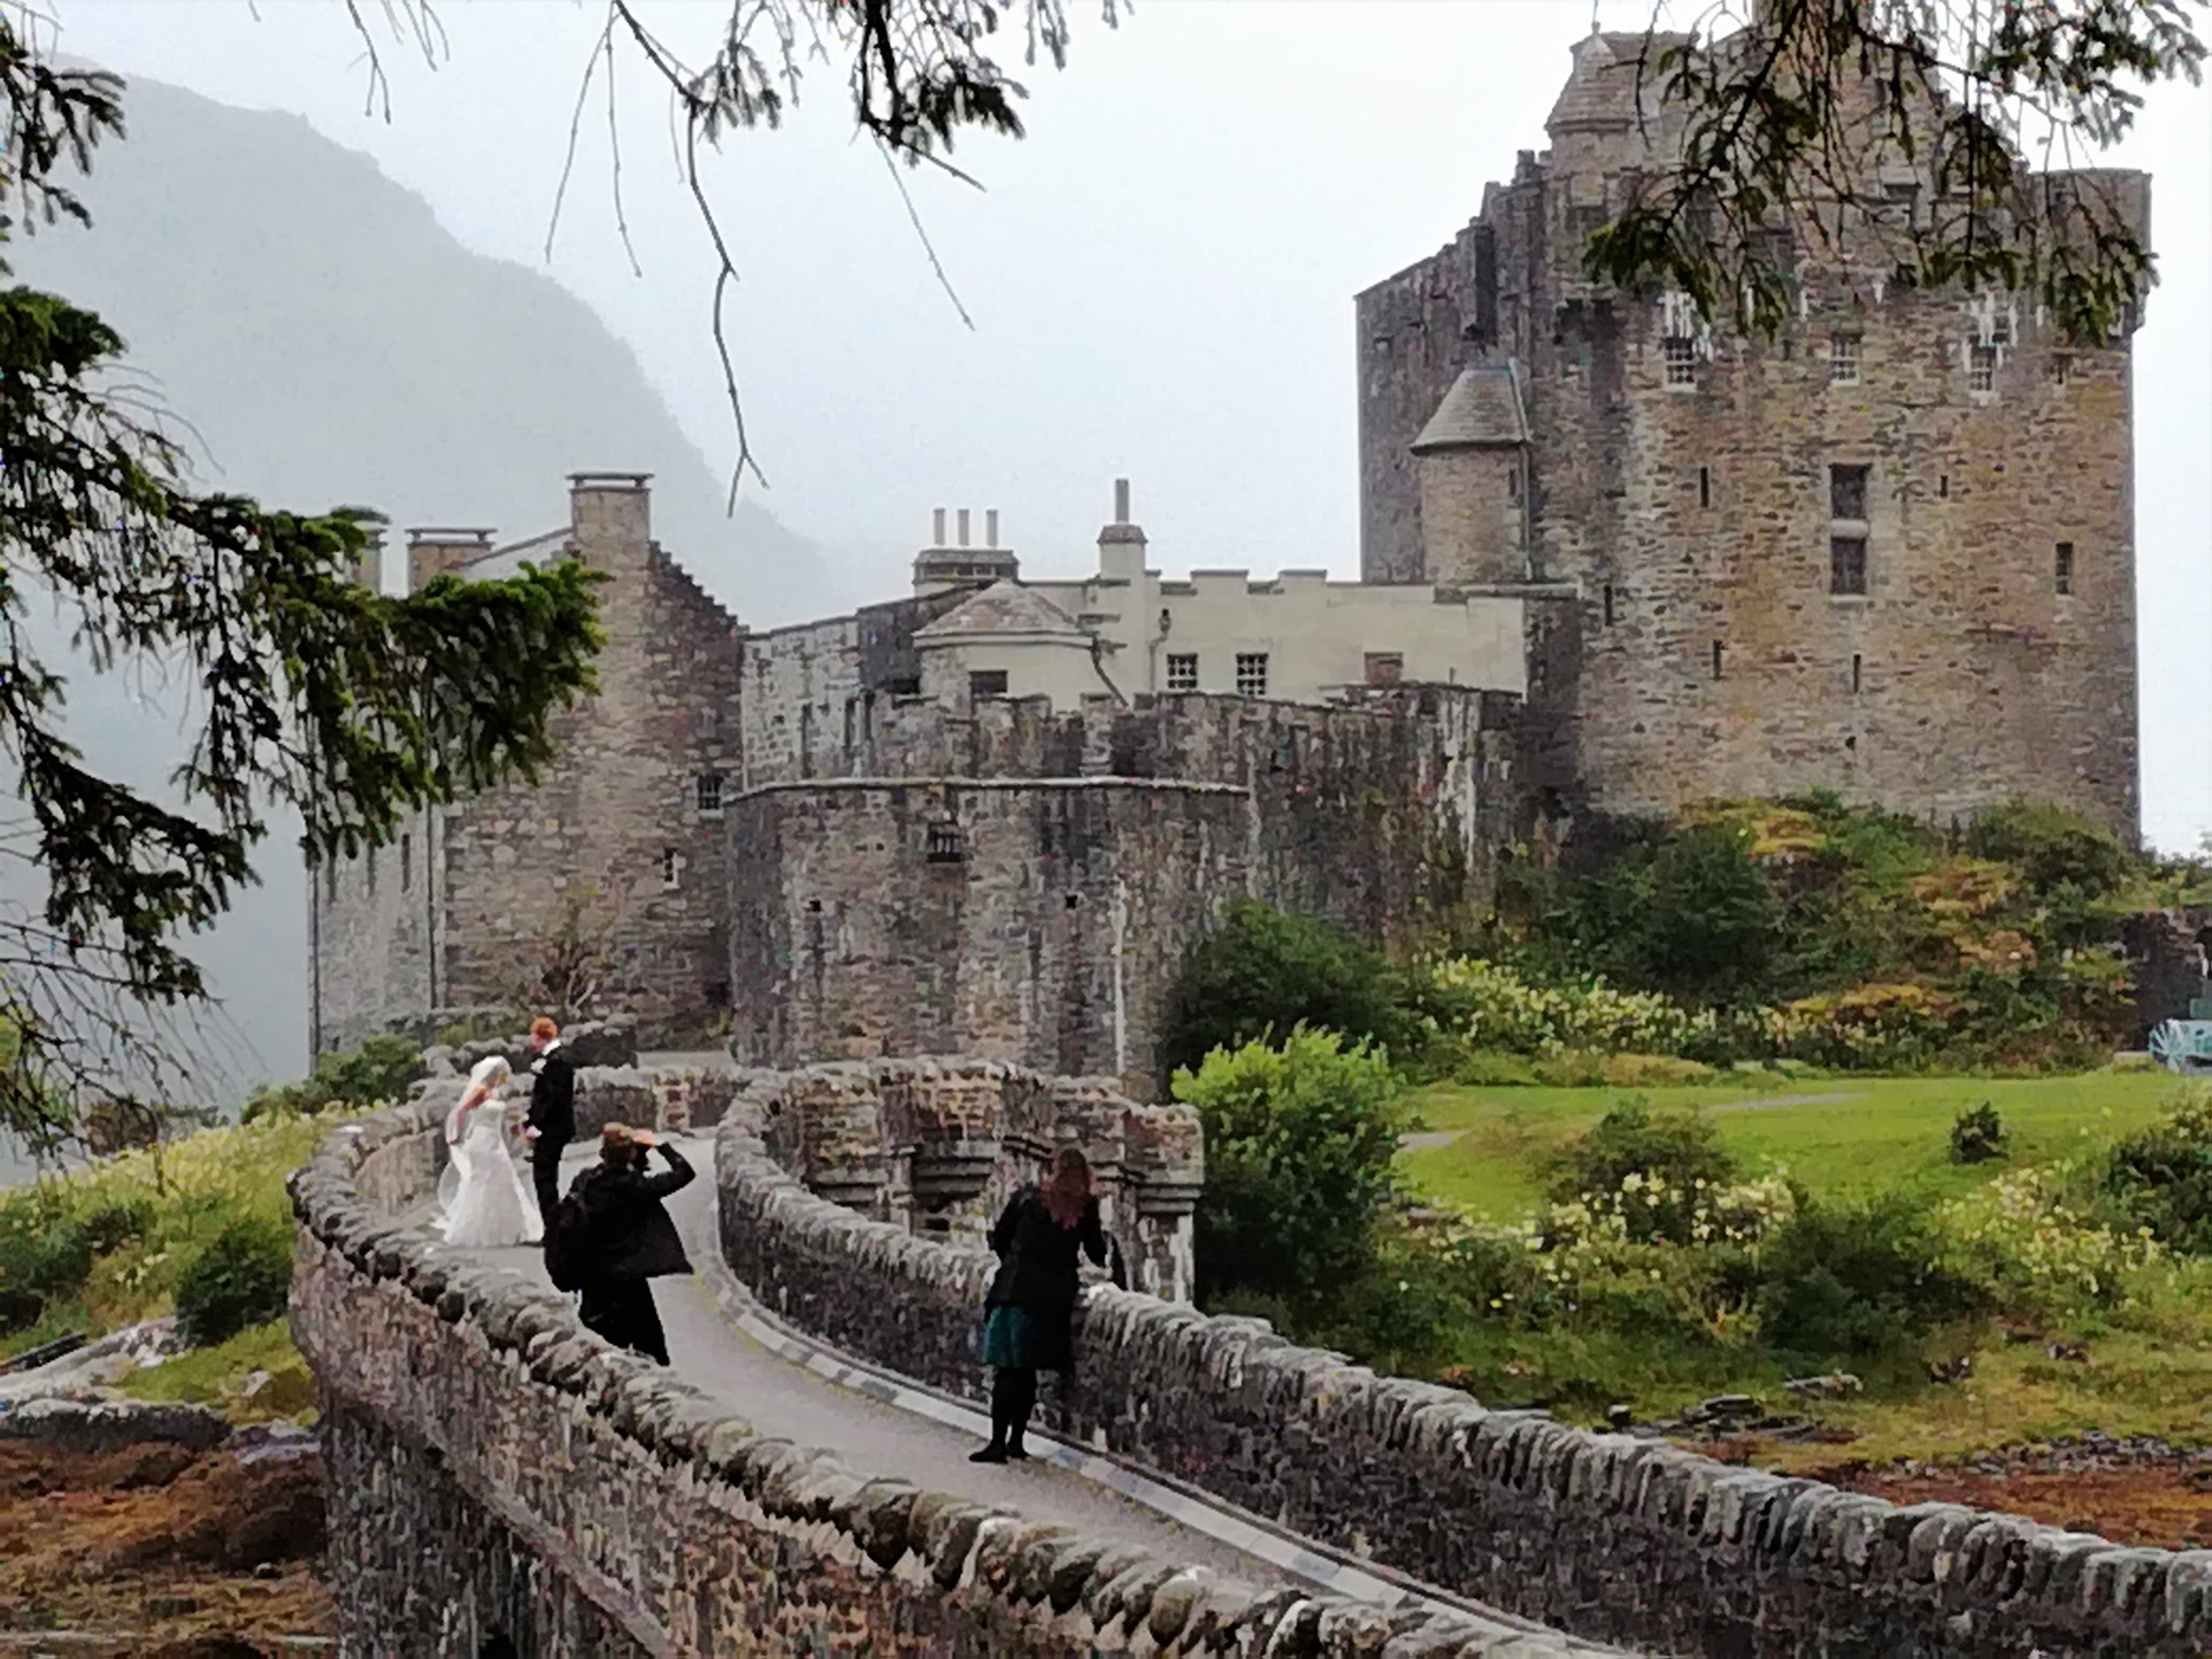 We chanced upon a wedding shoot at Eilean Donan castle complete with misty backdrop.